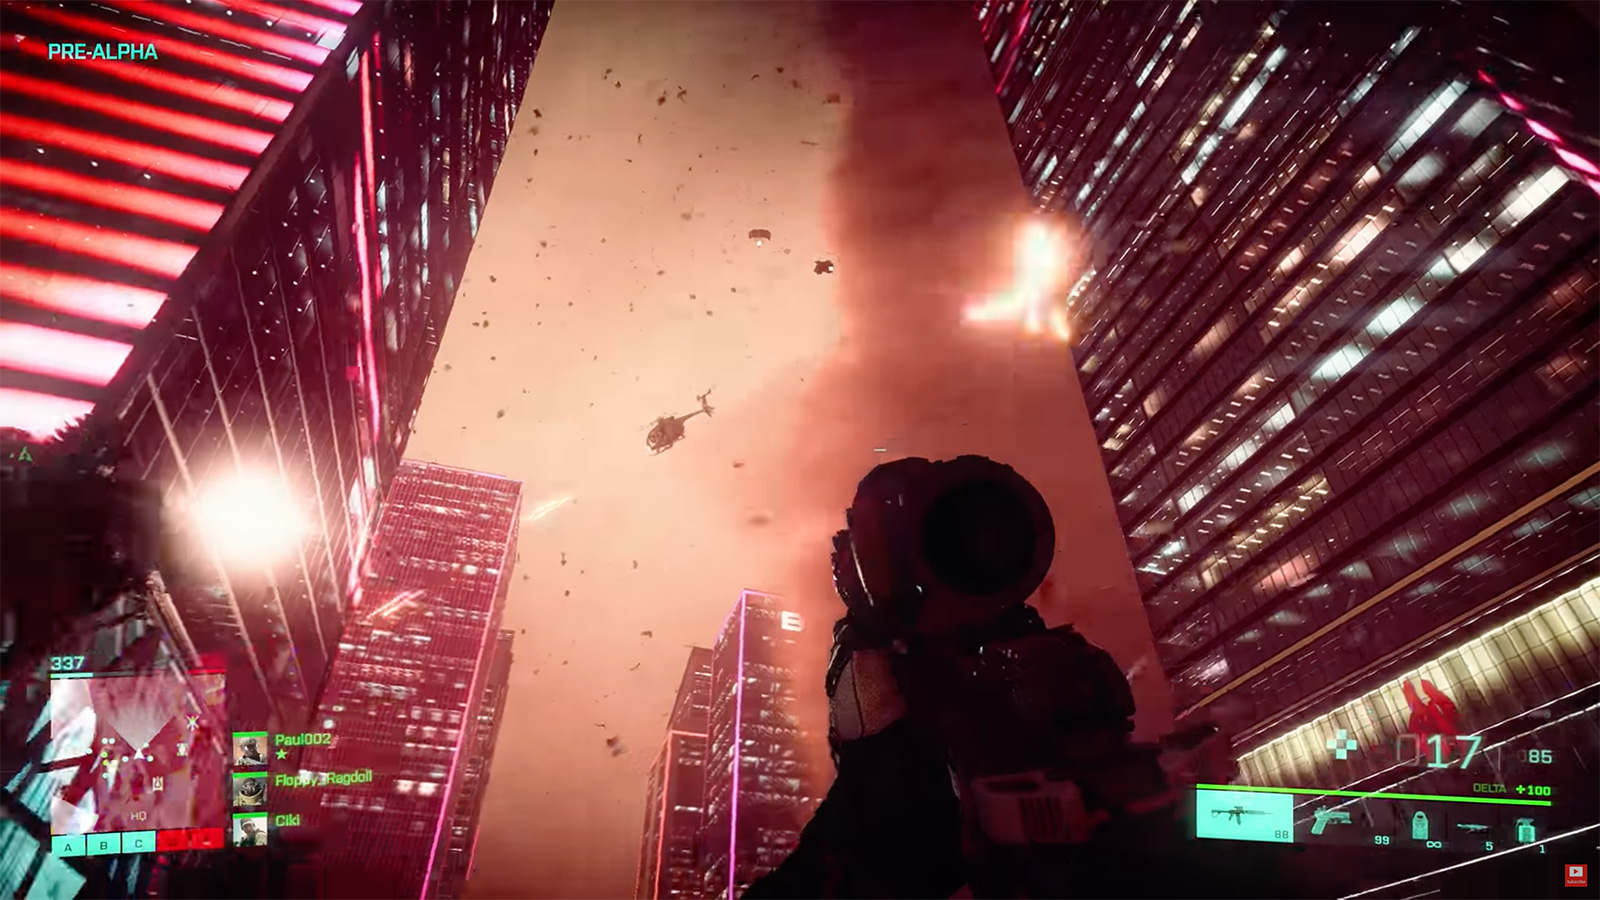 First 'Battlefield 2042' gameplay trailer shows tornadoes, rockets and wingsuits   Engadget